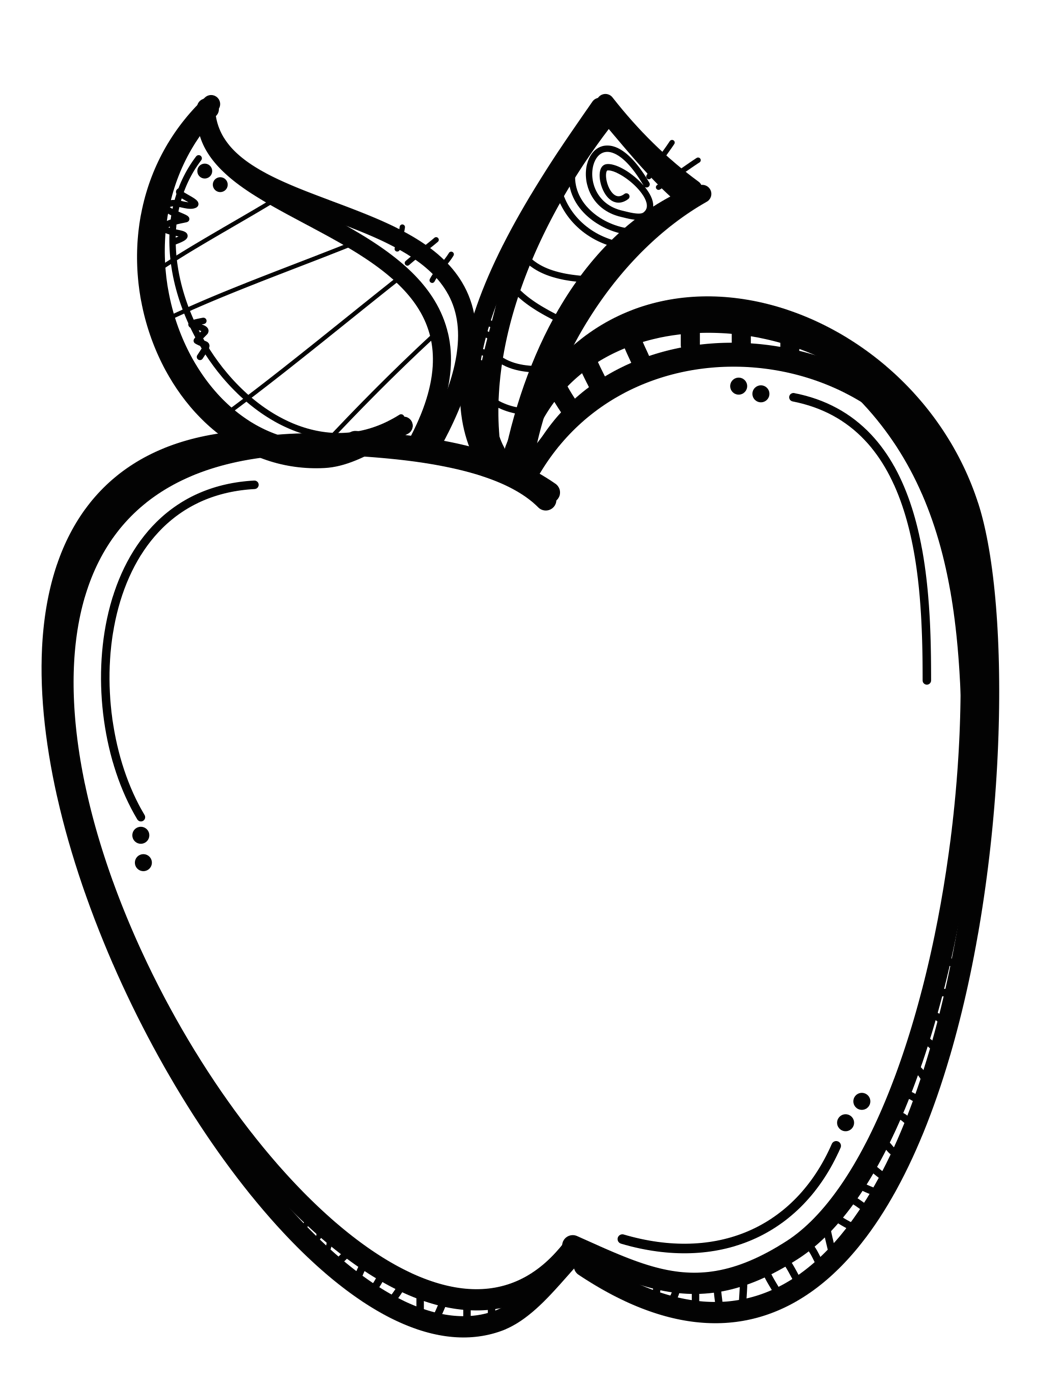 Apple orchard clipart black and white vector black and white download Pin by Wanna be a teacher on Drawing | Pinterest | Cricut design and ... vector black and white download